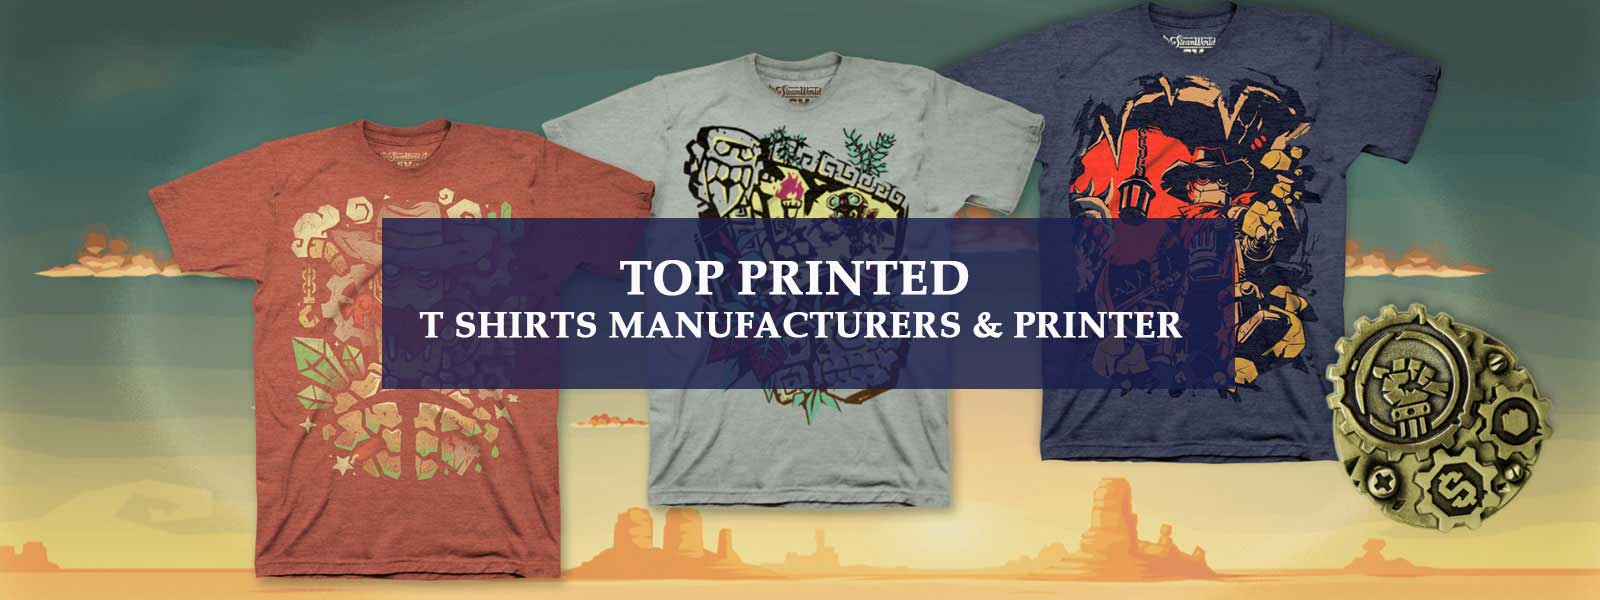 Top printed t shirts Manufacturers and Printer